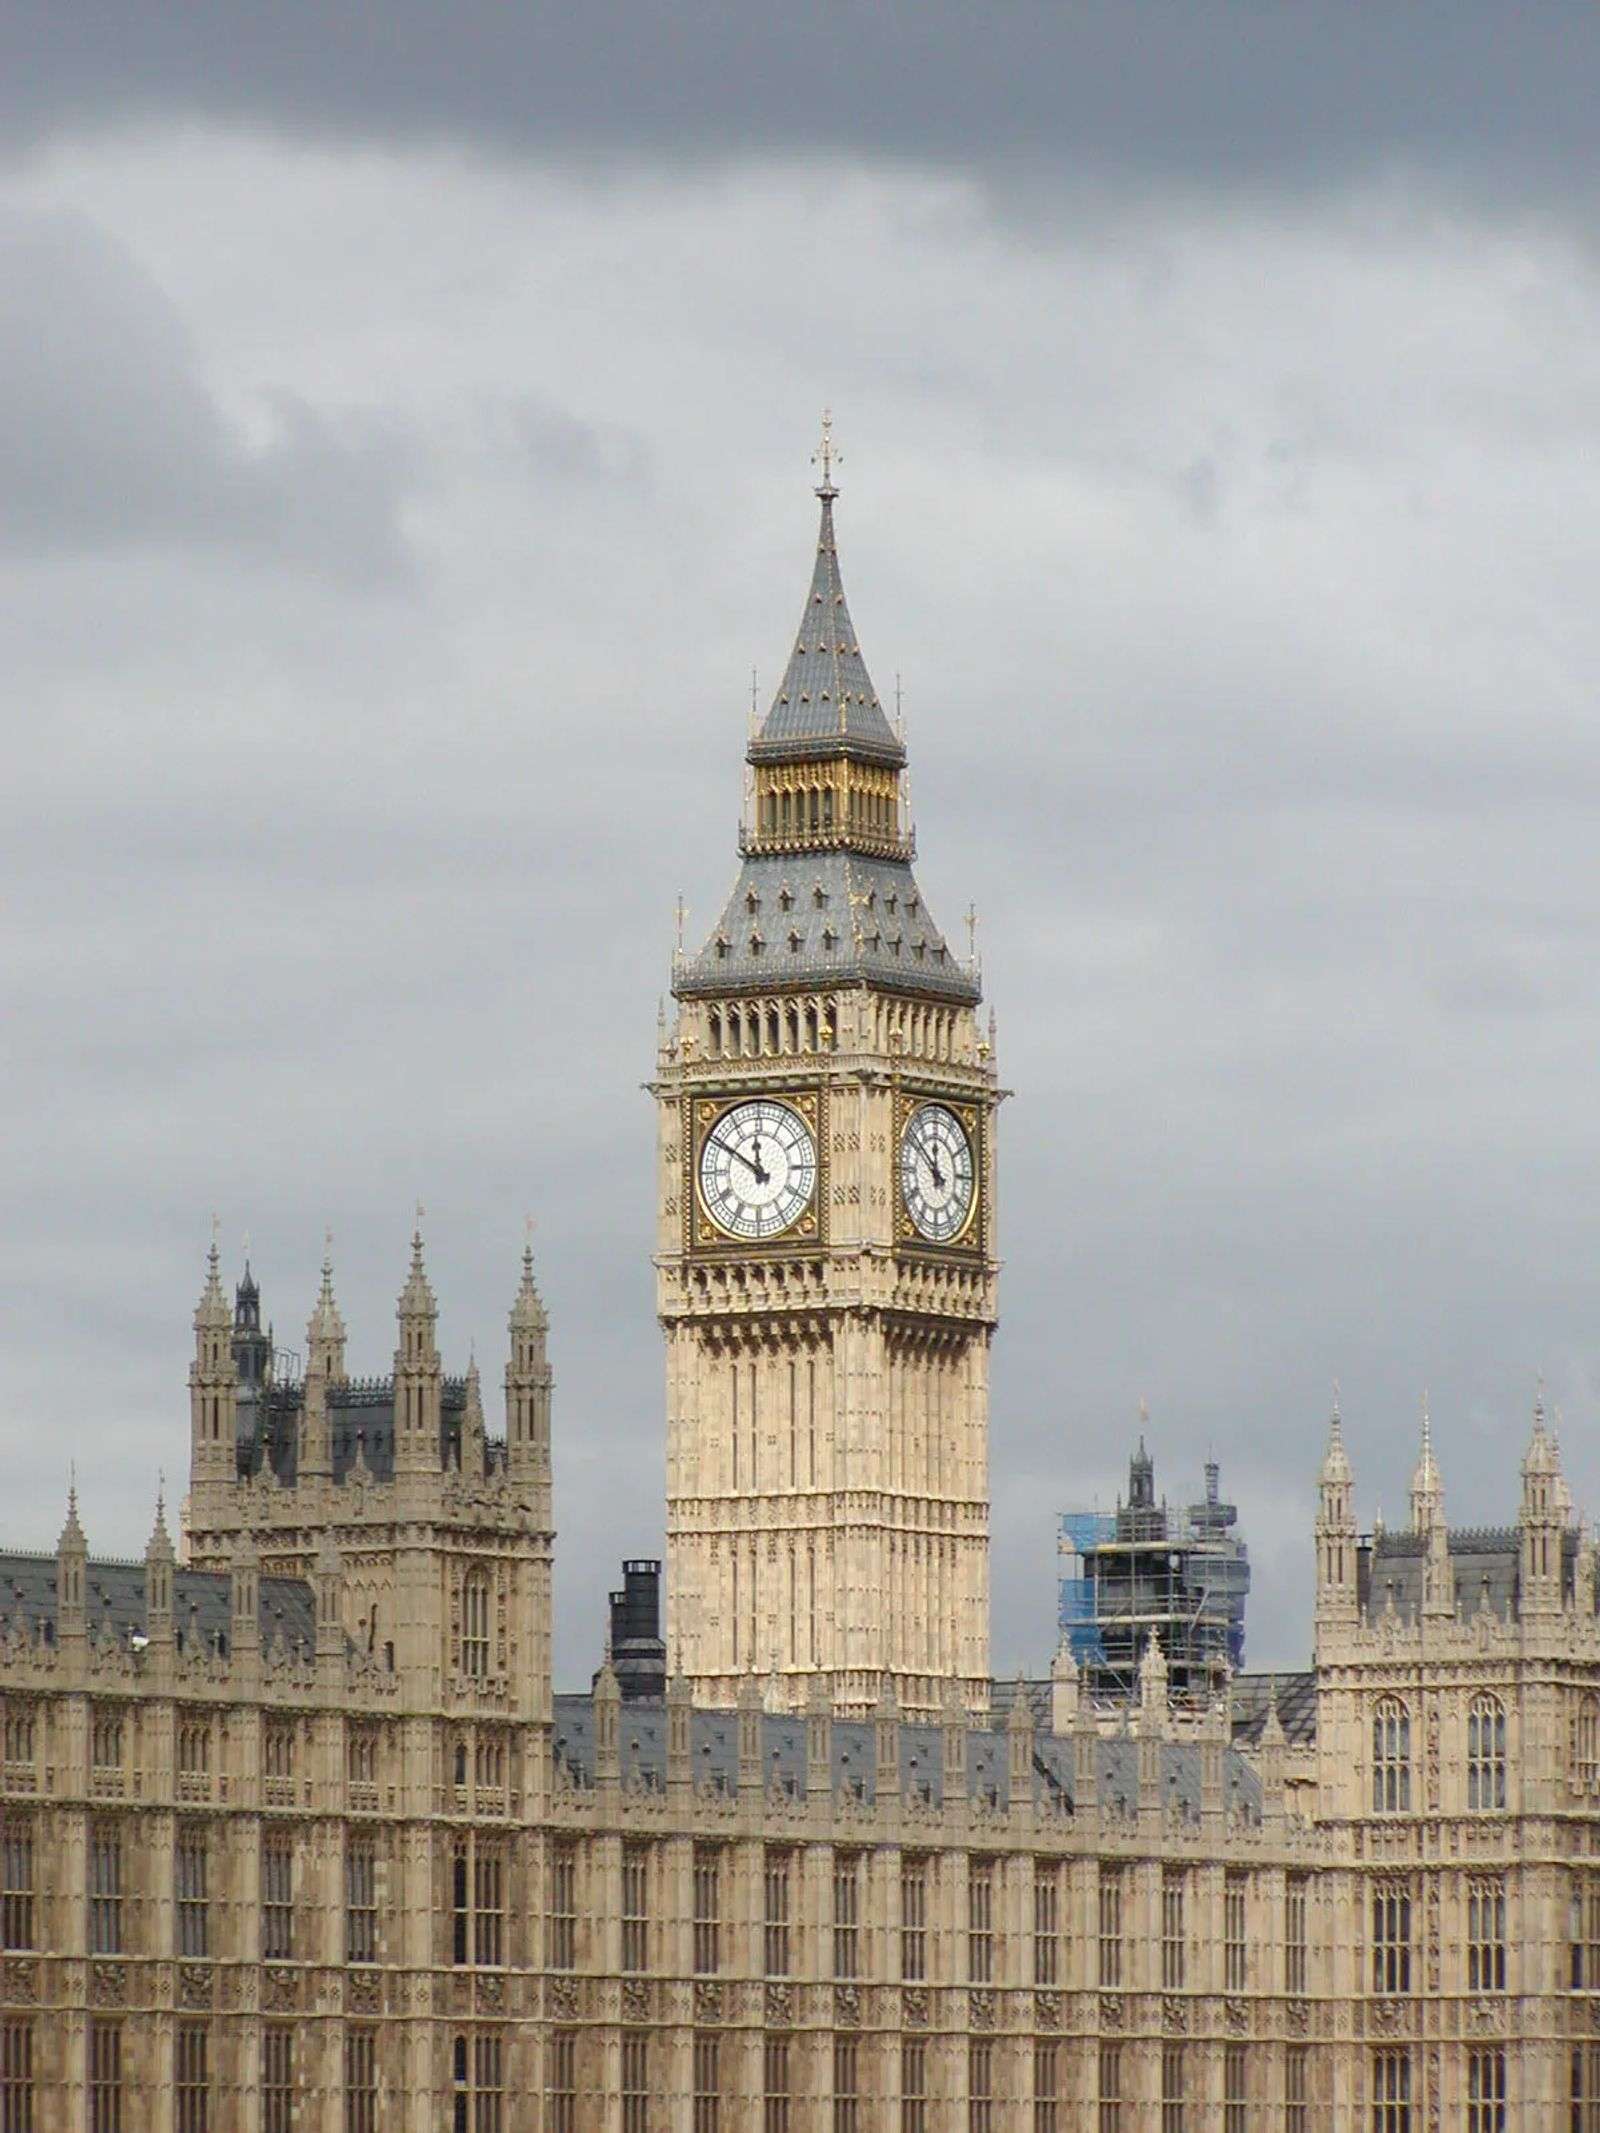 Photo of Big Ben in London, England